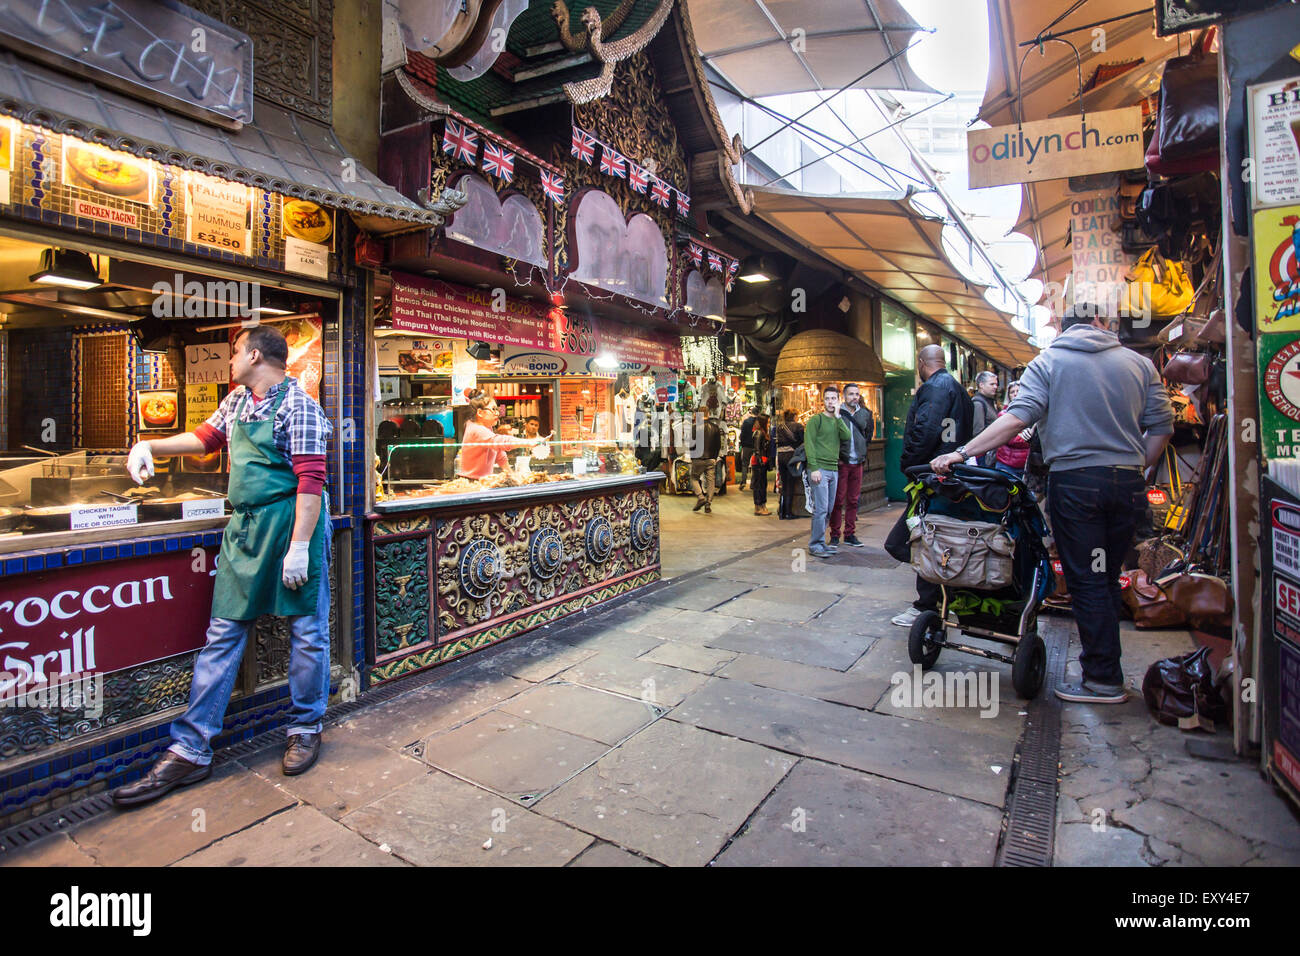 London, United Kingdom - October 10, 2014: View of The Stables at Camden Market in London with workers and visitors - Stock Image